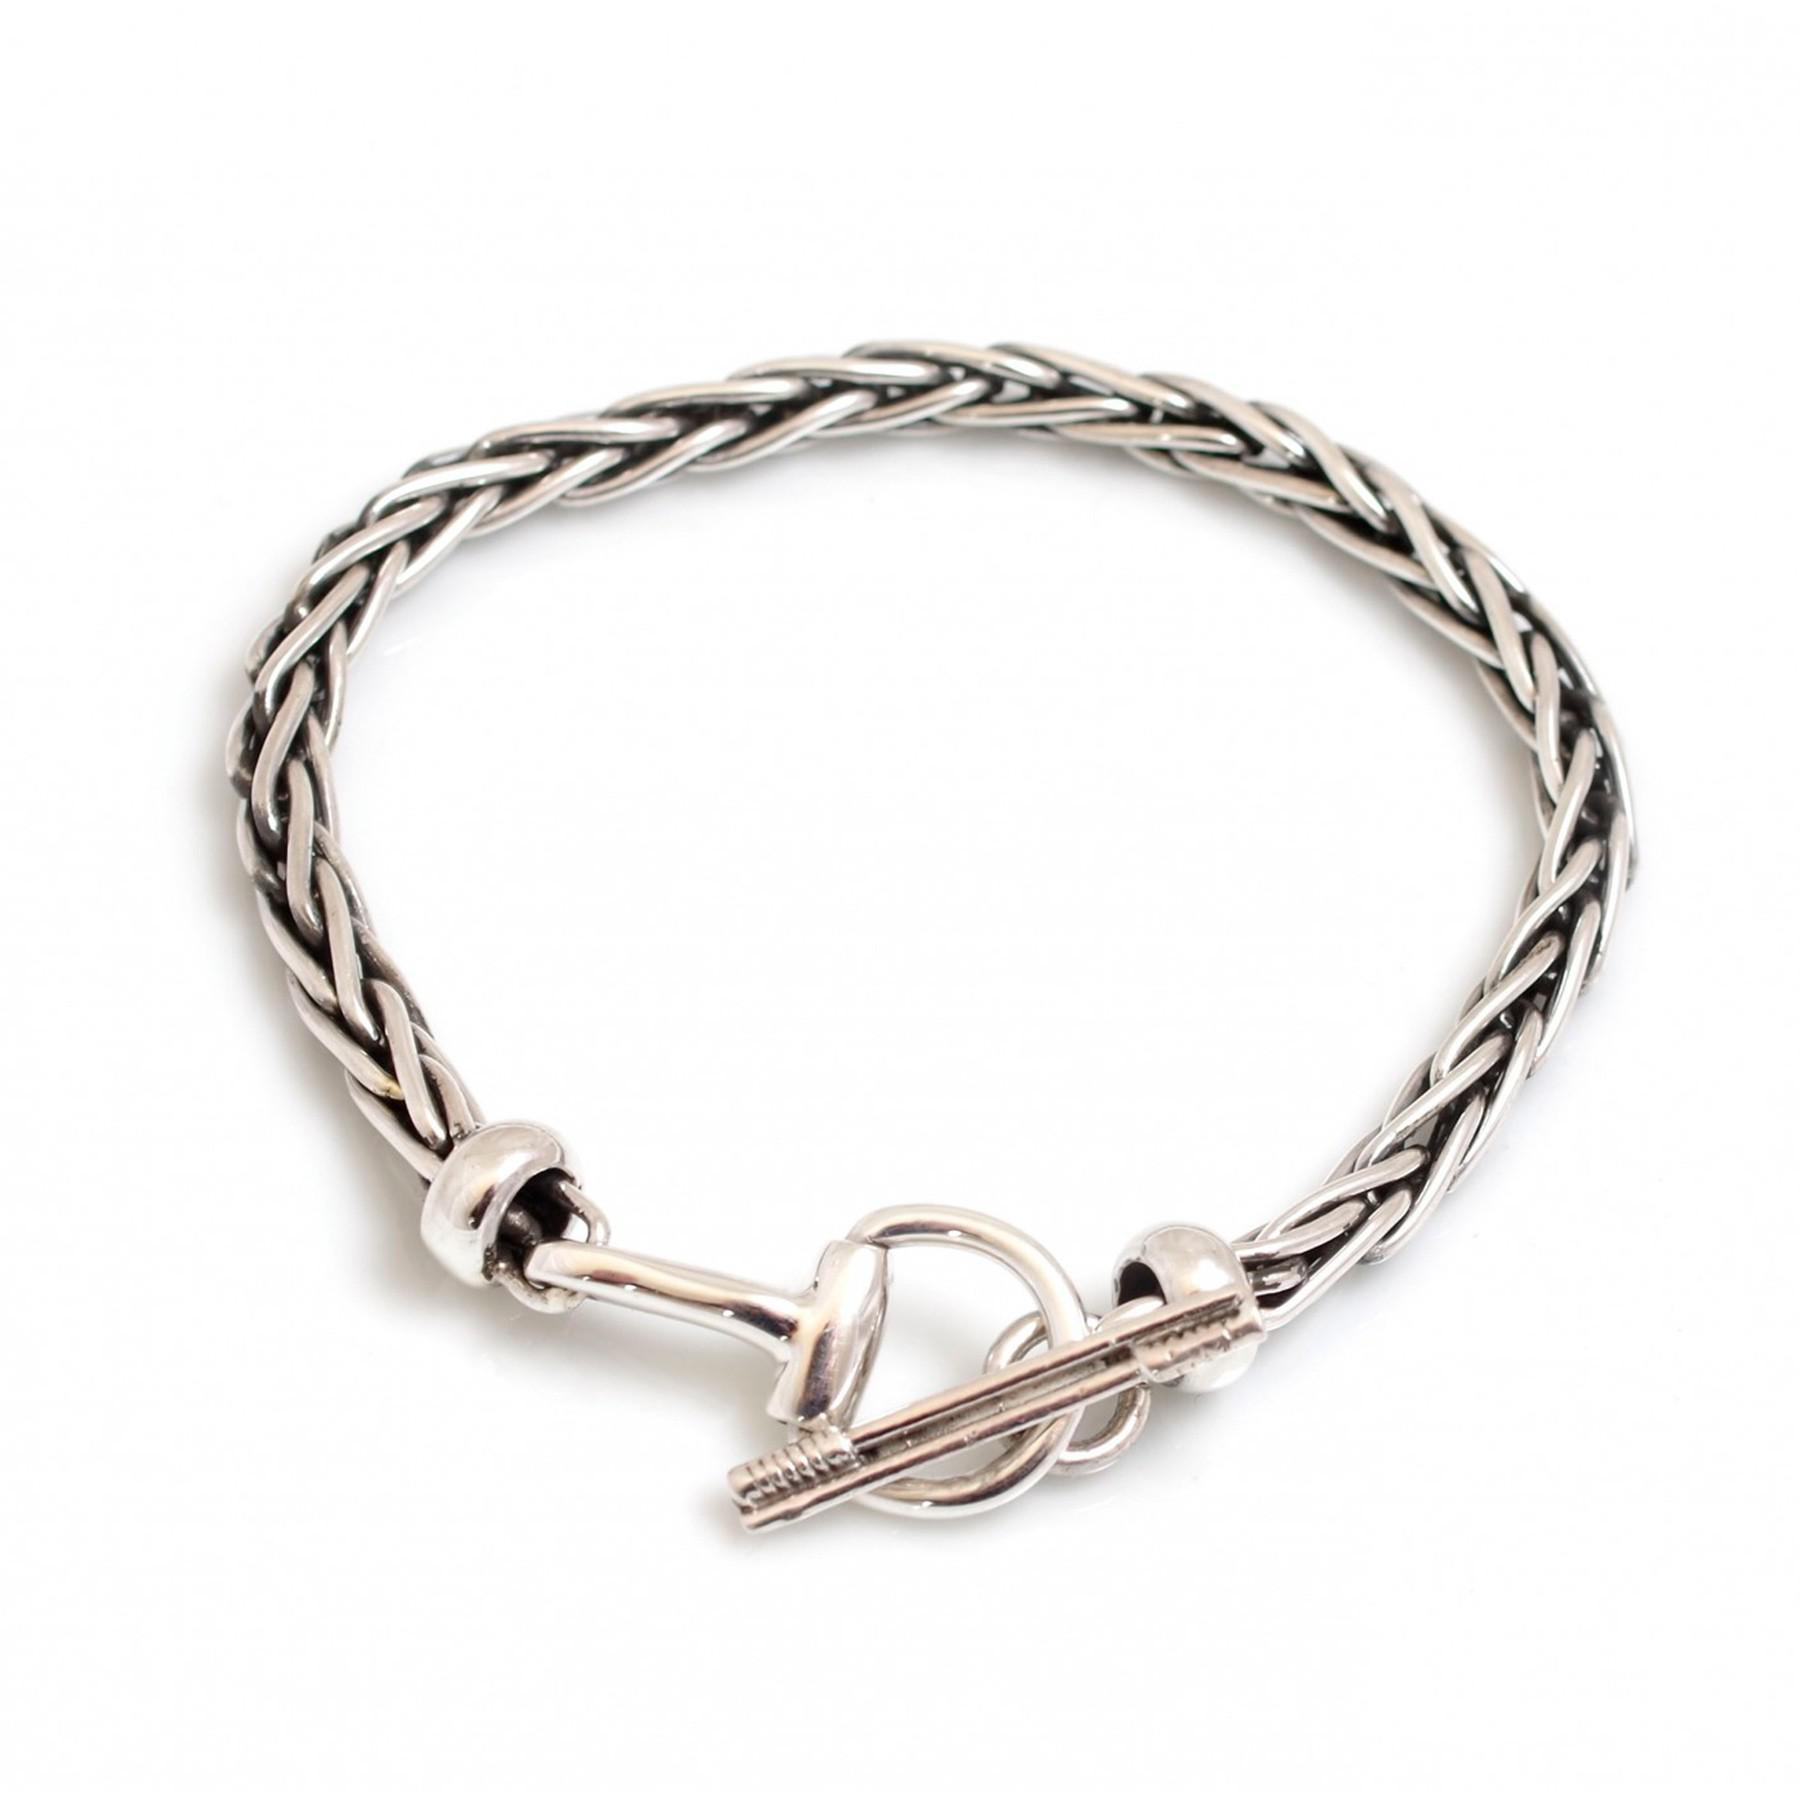 silver heights bracelet keswick gucci jewelers sterling arlington product